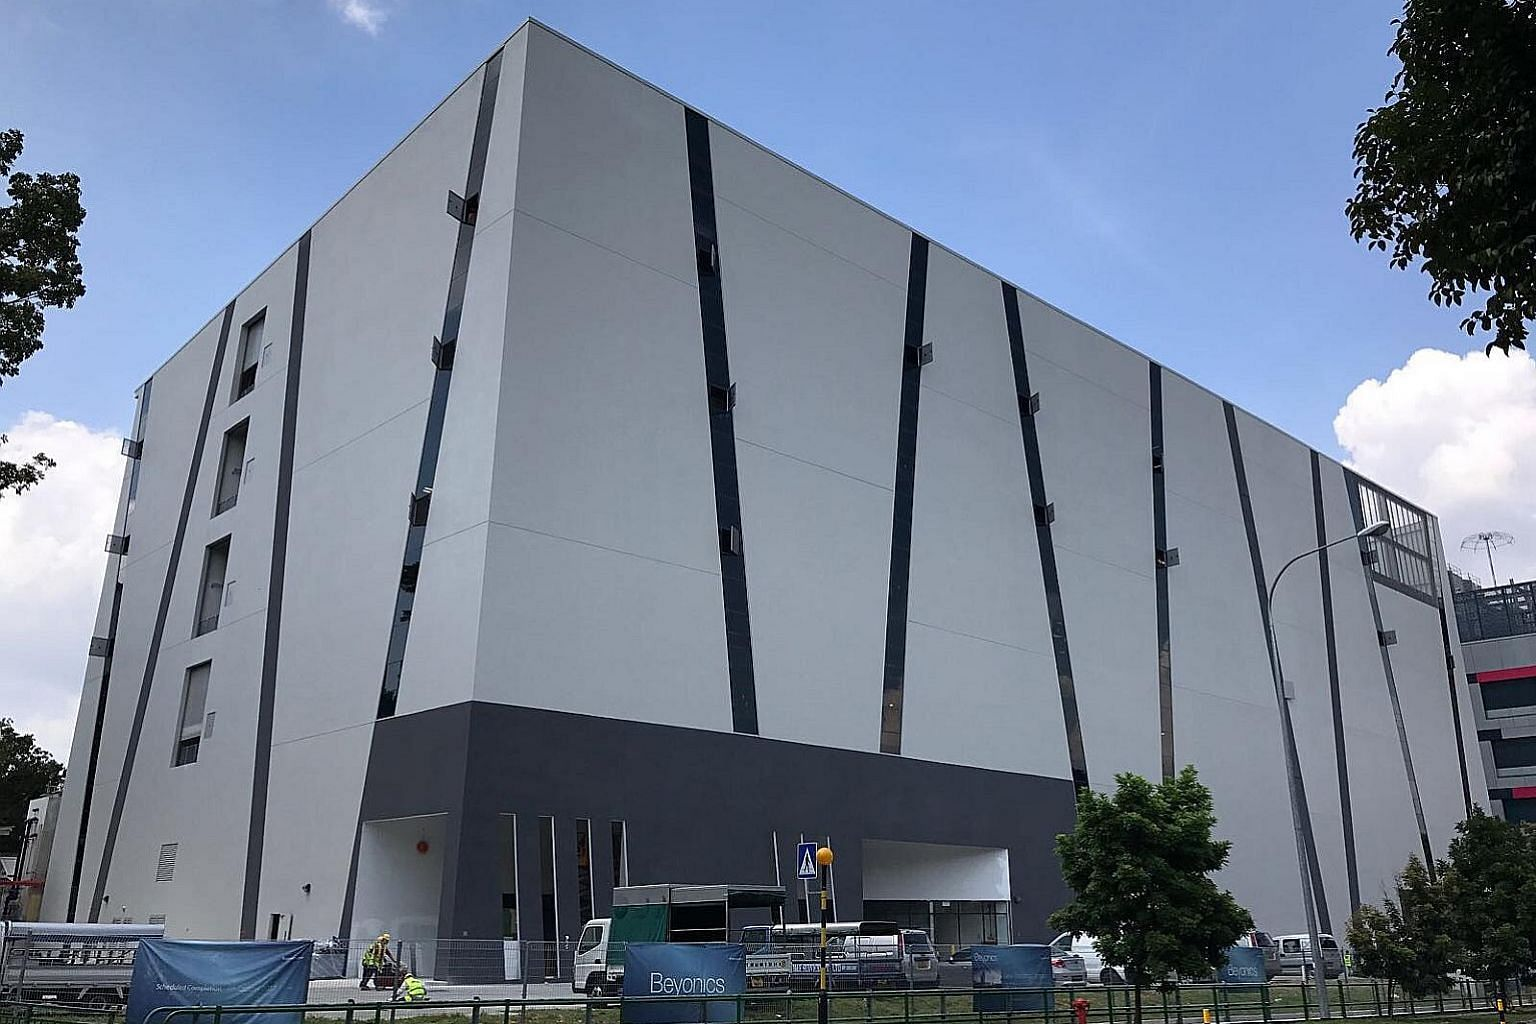 Beyonics' new 230,000 sq ft headquarters in Marsiling replaces four separate manufacturing sites in Singapore. It will house both Beyonics' manufacturing and engineering businesses and is expected to add 62 professional, manager, executive and techni